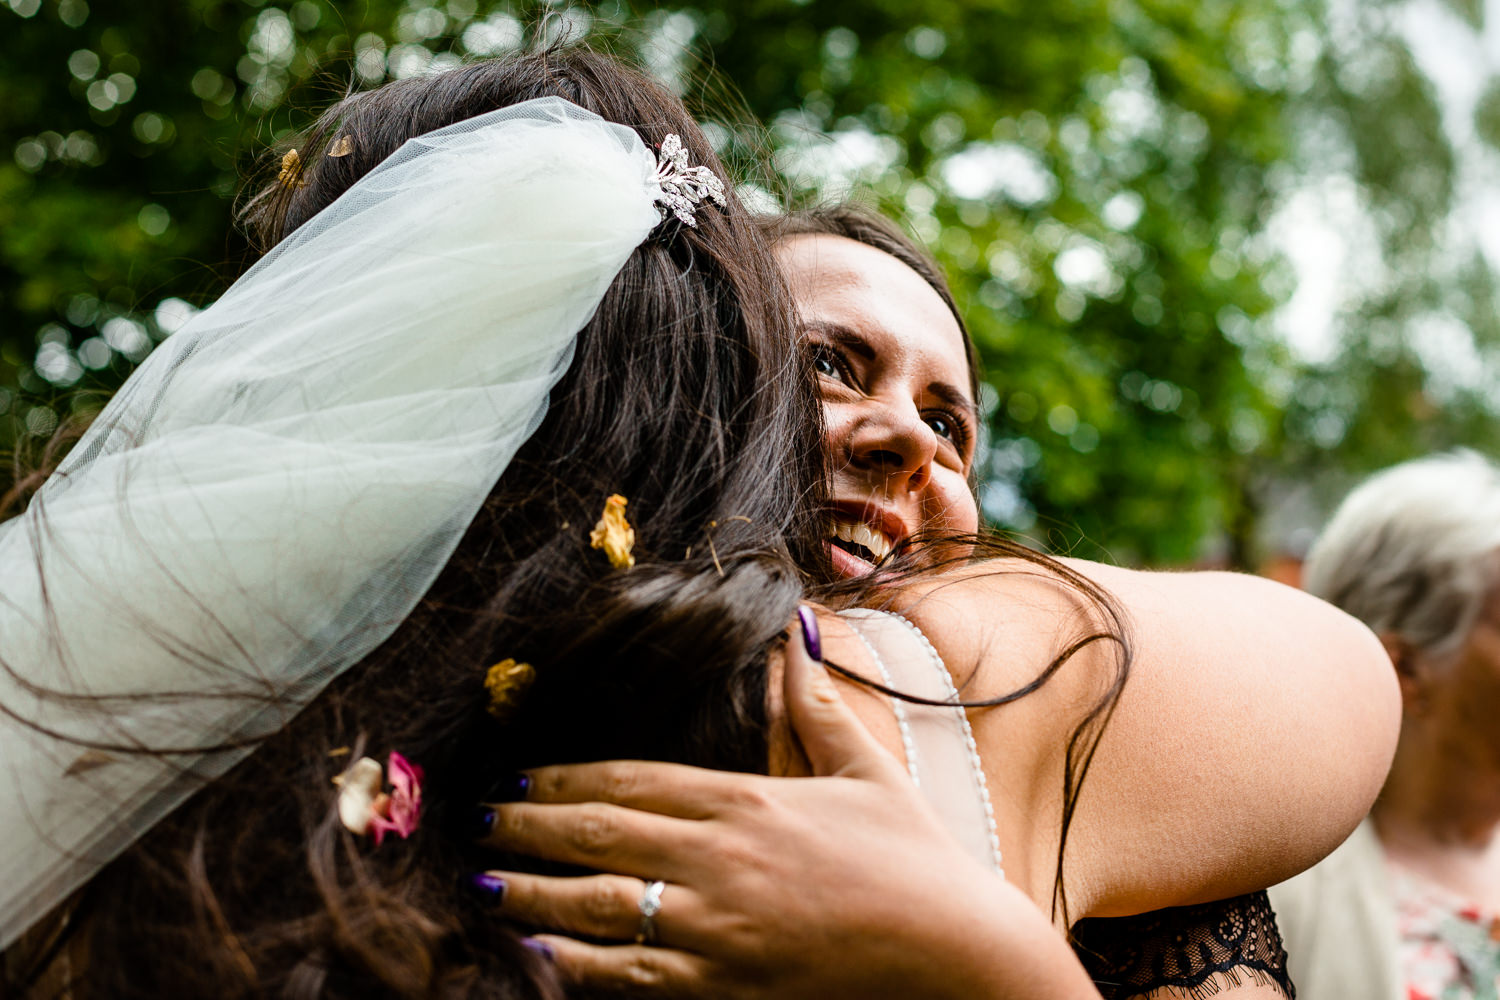 Hugging the bride at a relaxed wedding